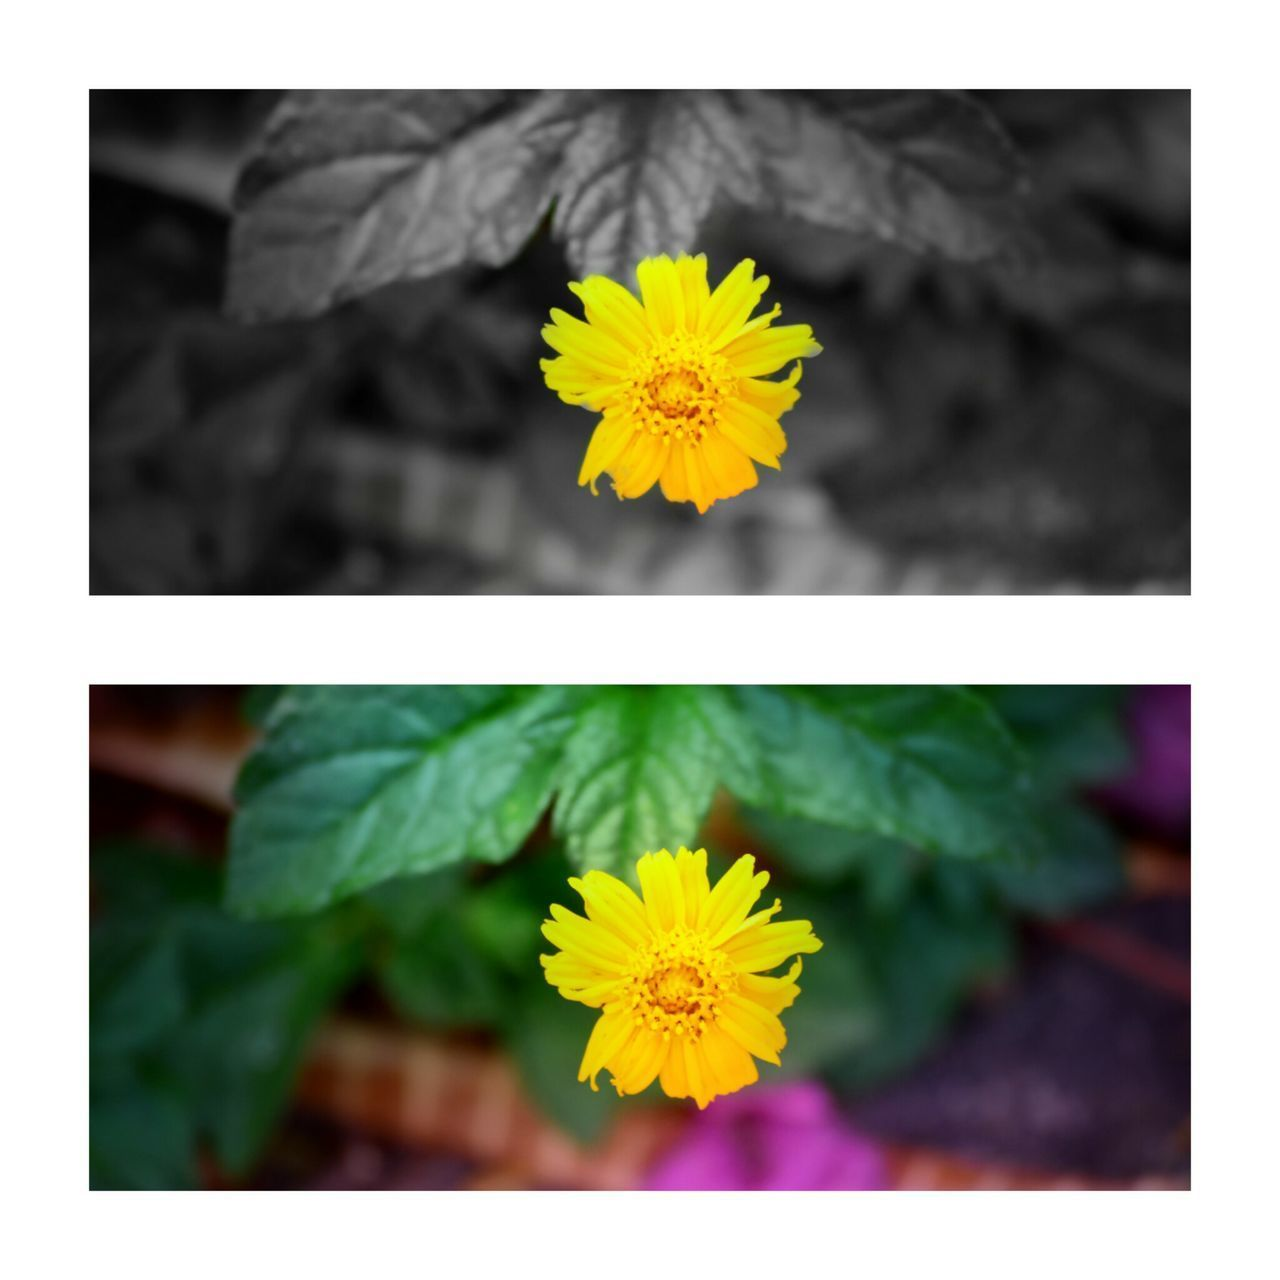 Flower Street India_clicks Yellow Flower Close-up Likeforfollow Followforfollow Like4like Follow4follow Likesforlikes Like4likes Outdoors Follower Looking At Camera